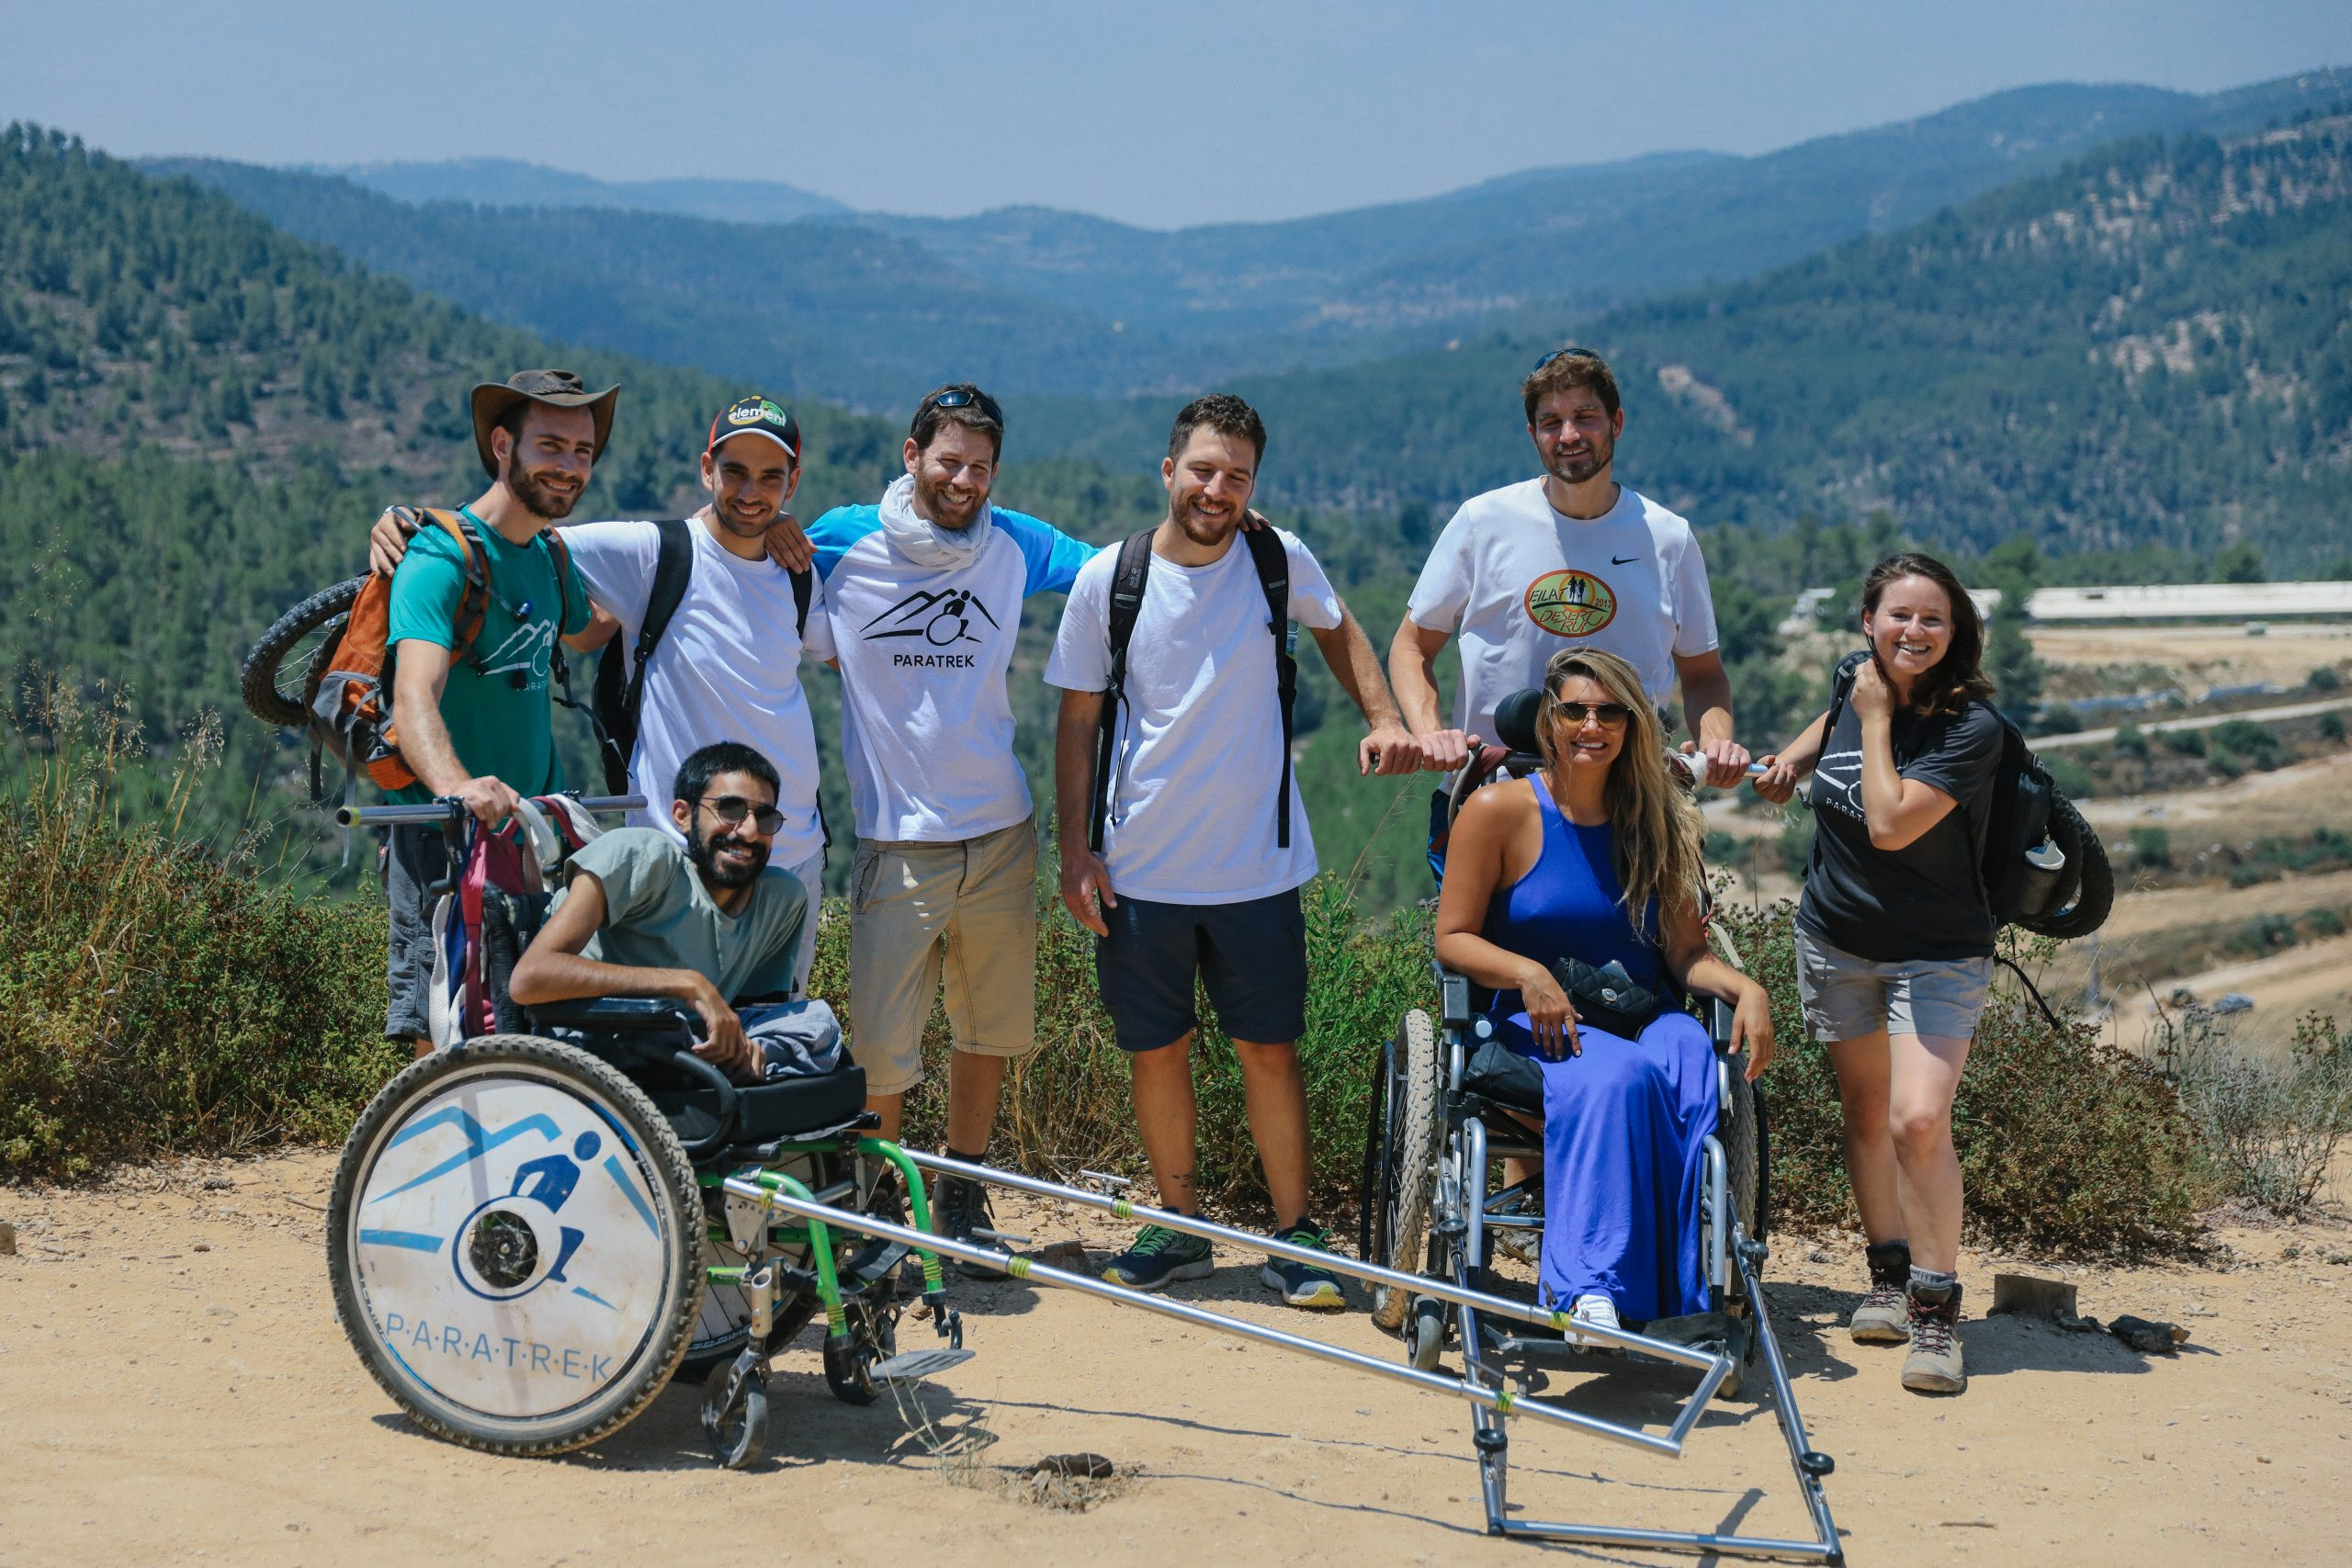 """<img src=""""Paratrek Group.jpg"""" alt=""""A smiling group of 6 people standing on a hill against a scenic mountain backdrop with 2 people sitting in Trekkers with smiles on their faces"""">"""